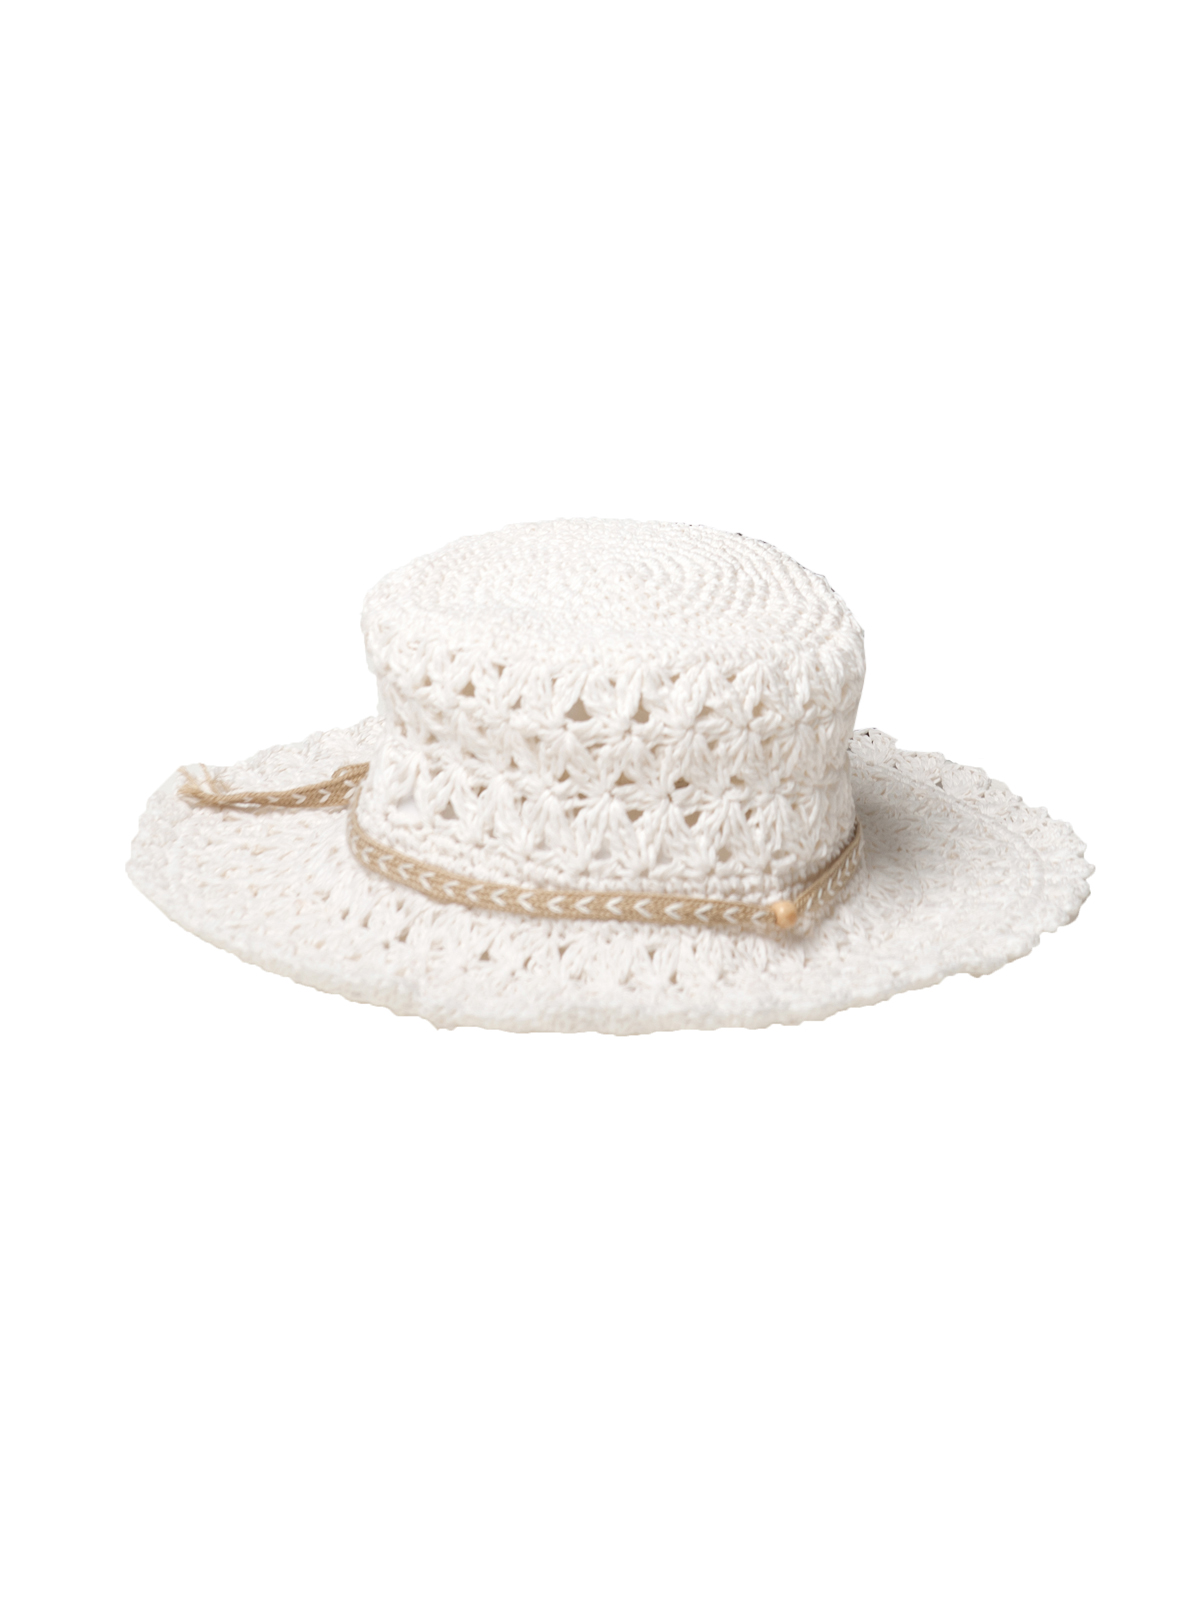 Sombrero Sombrero De Ganchillo Blanco - White Crochet Hat